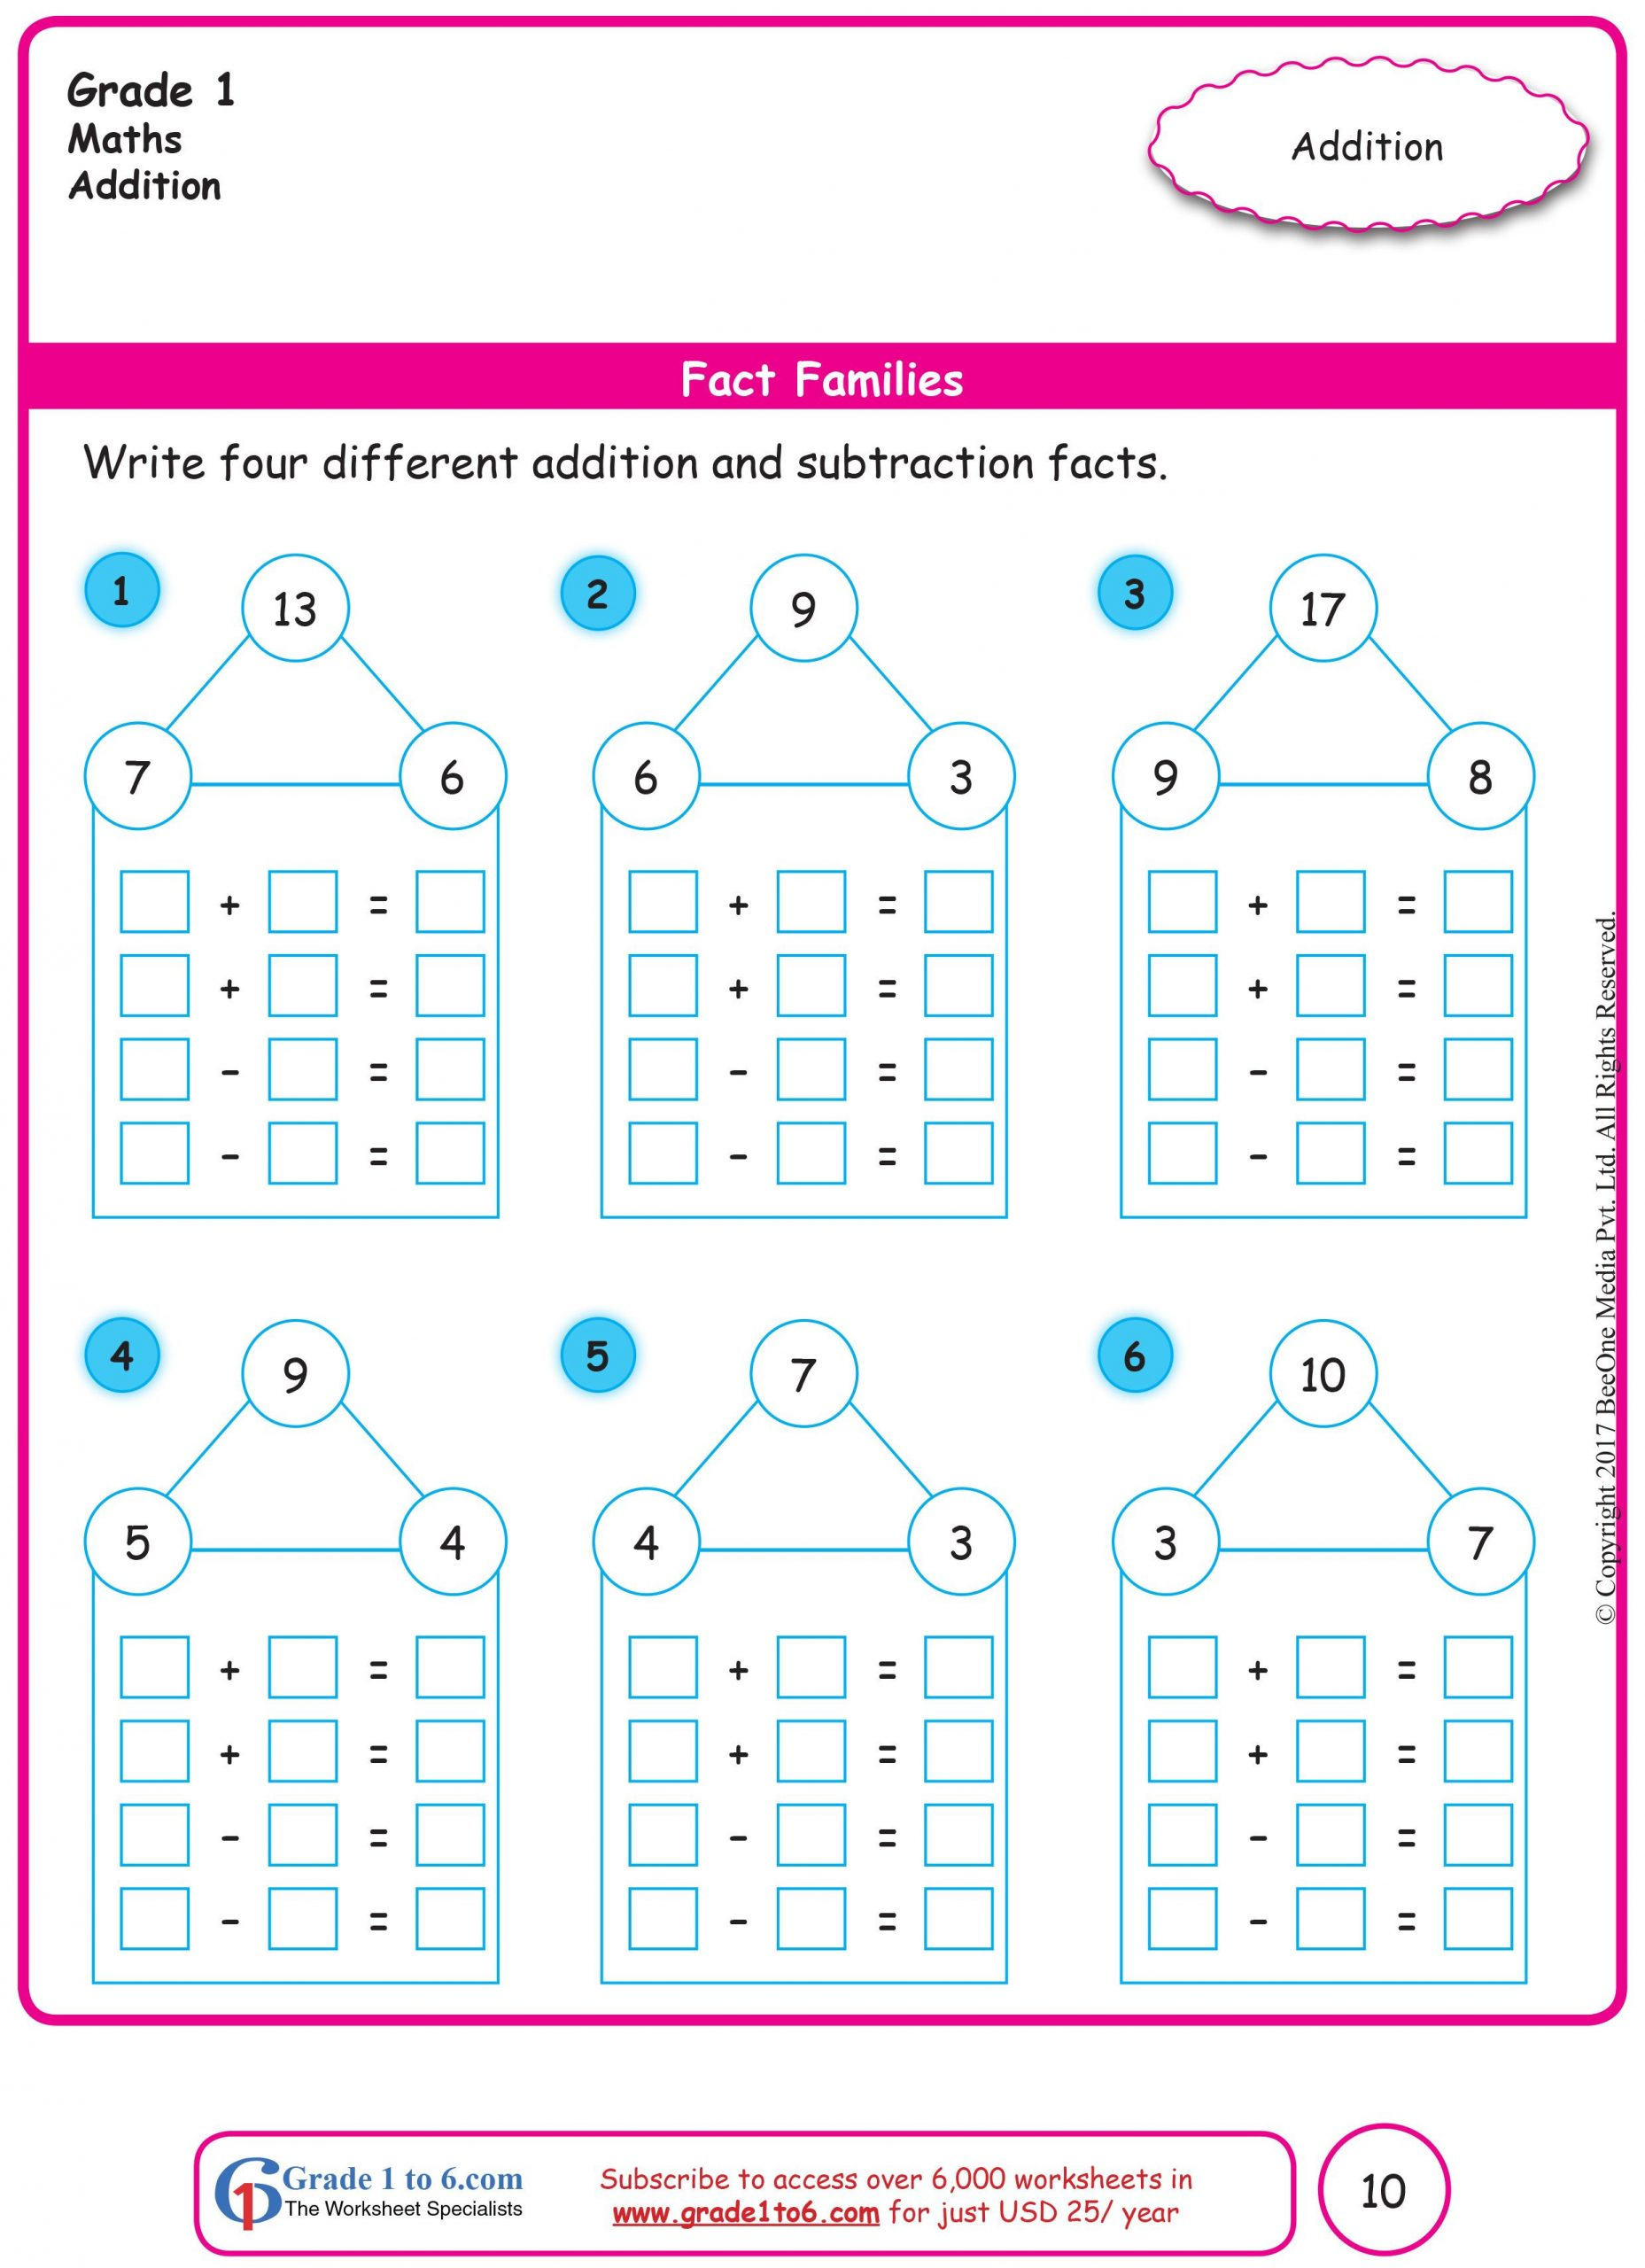 Fact Family Worksheets 1st Grade Free Math Worksheets for Grade 1 Through Grade 6 Subscribe